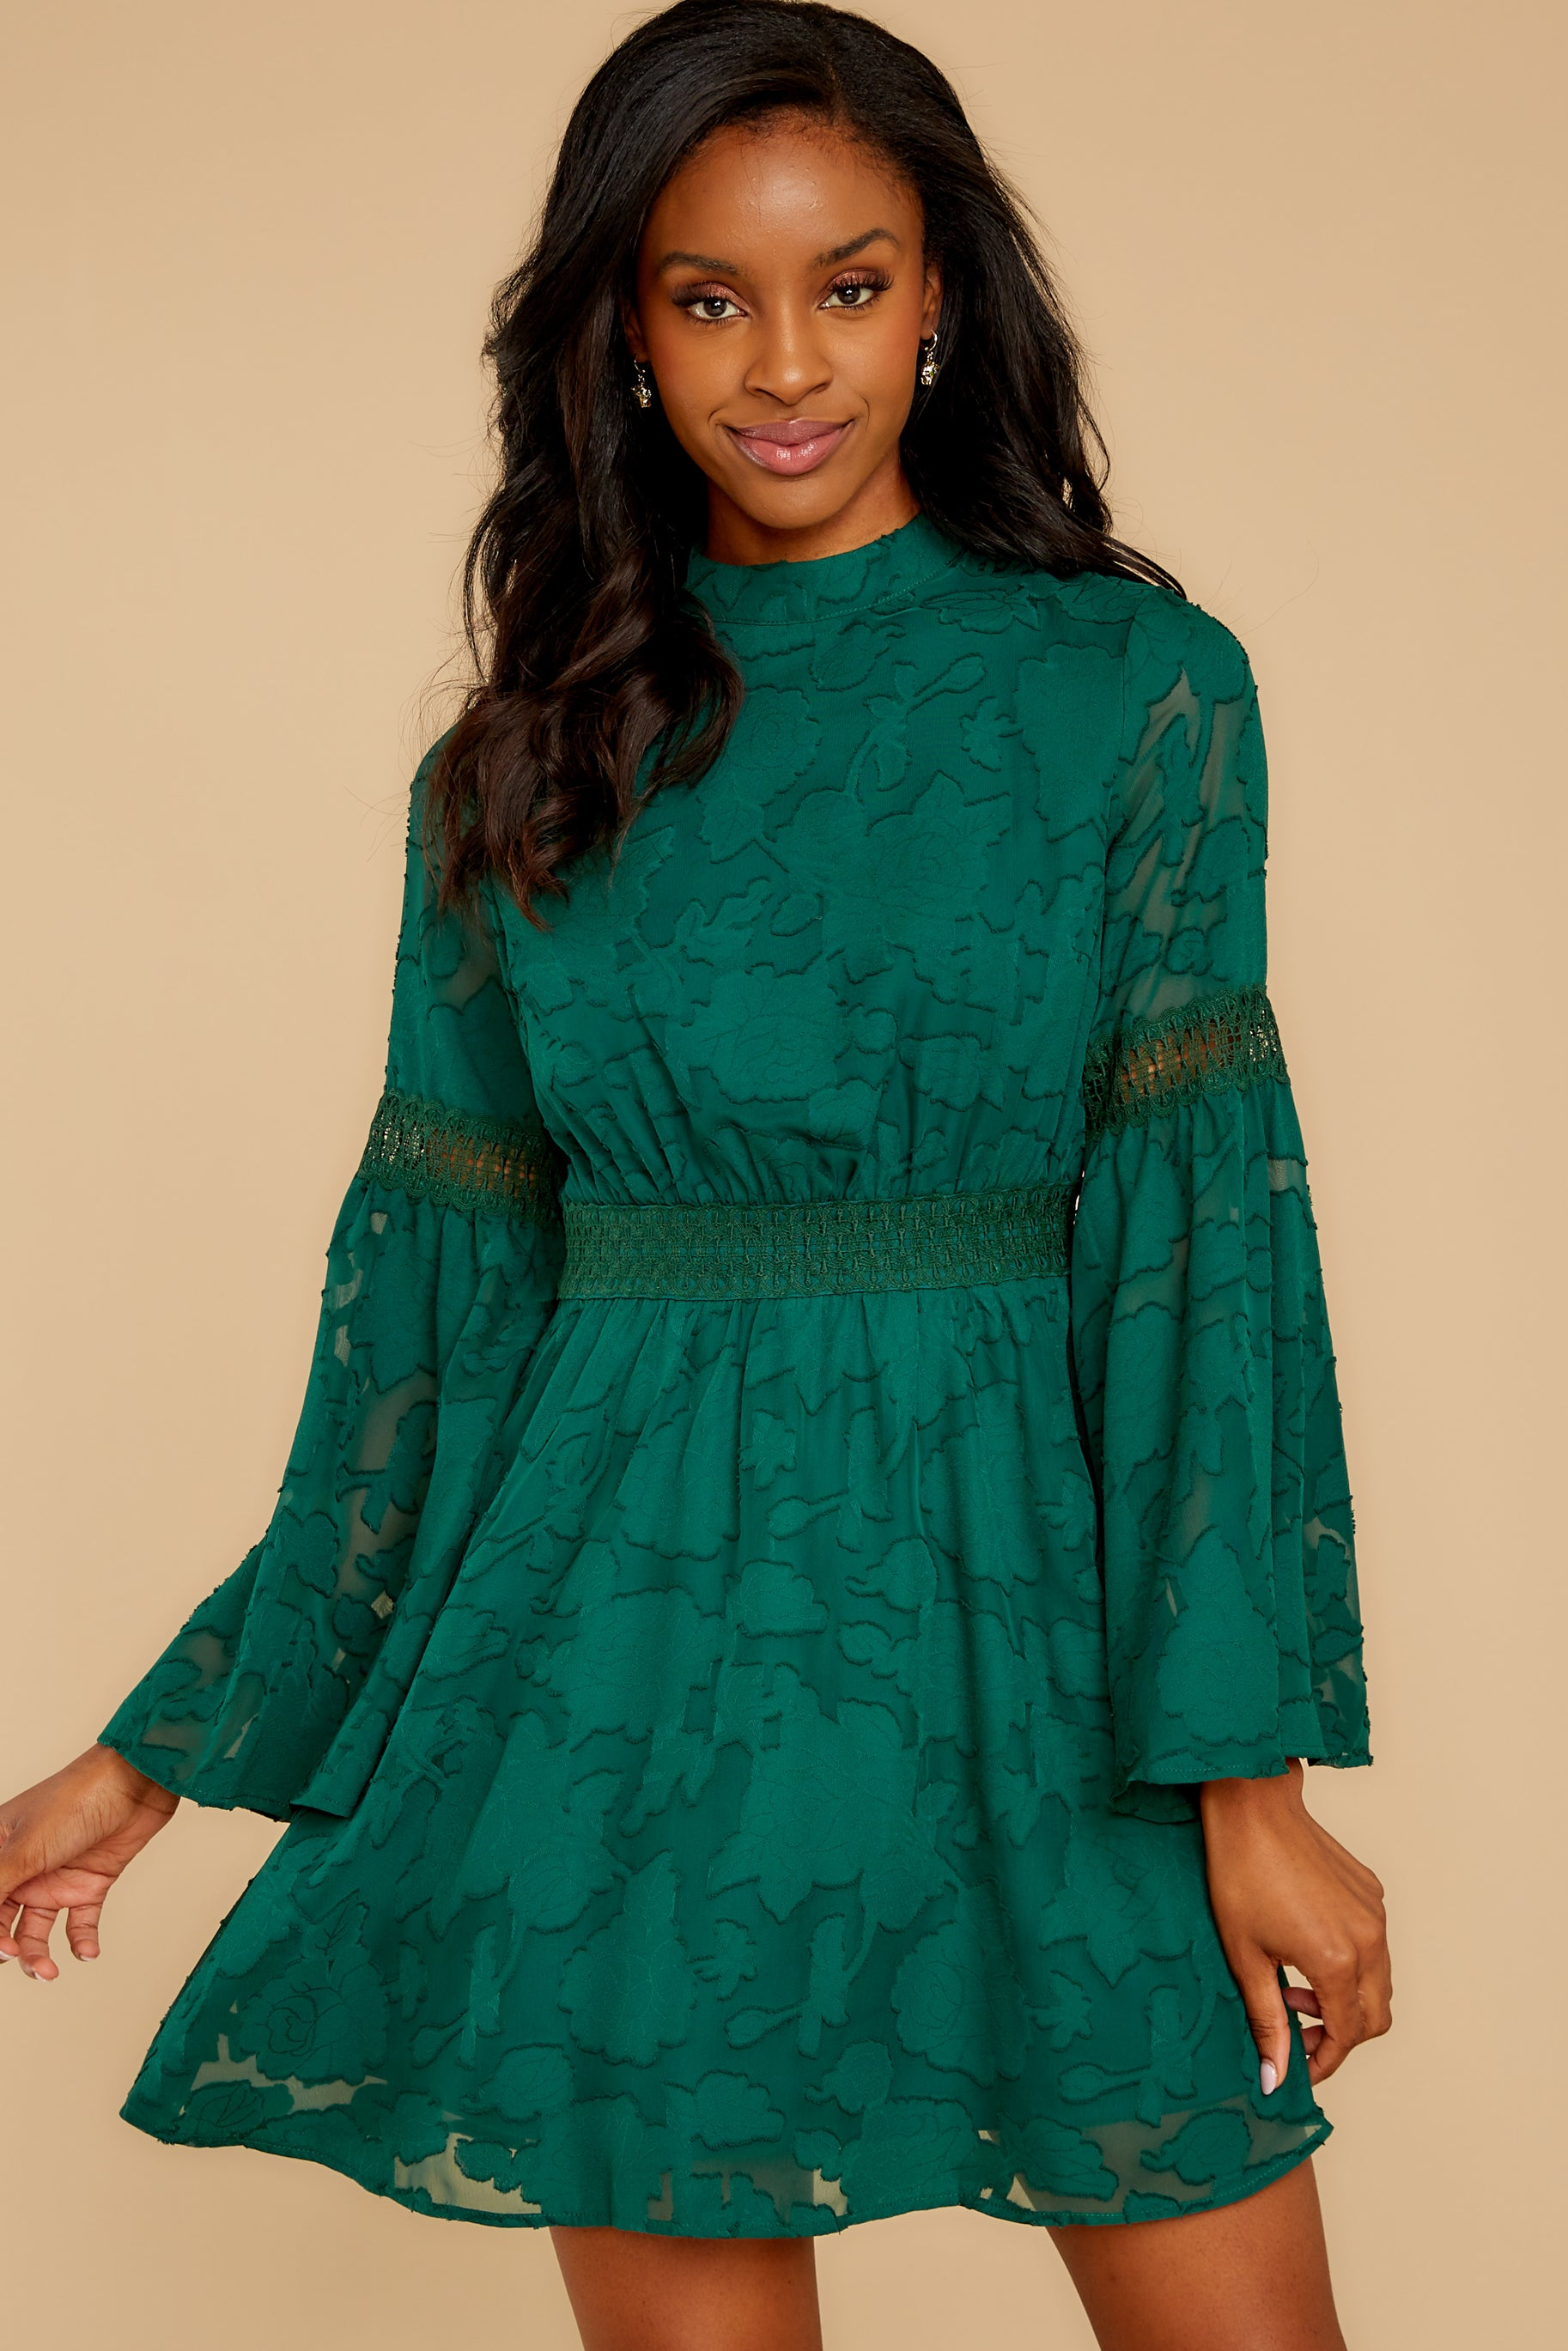 6 Love You More Emerald Green Lace Dress at reddressboutique.com